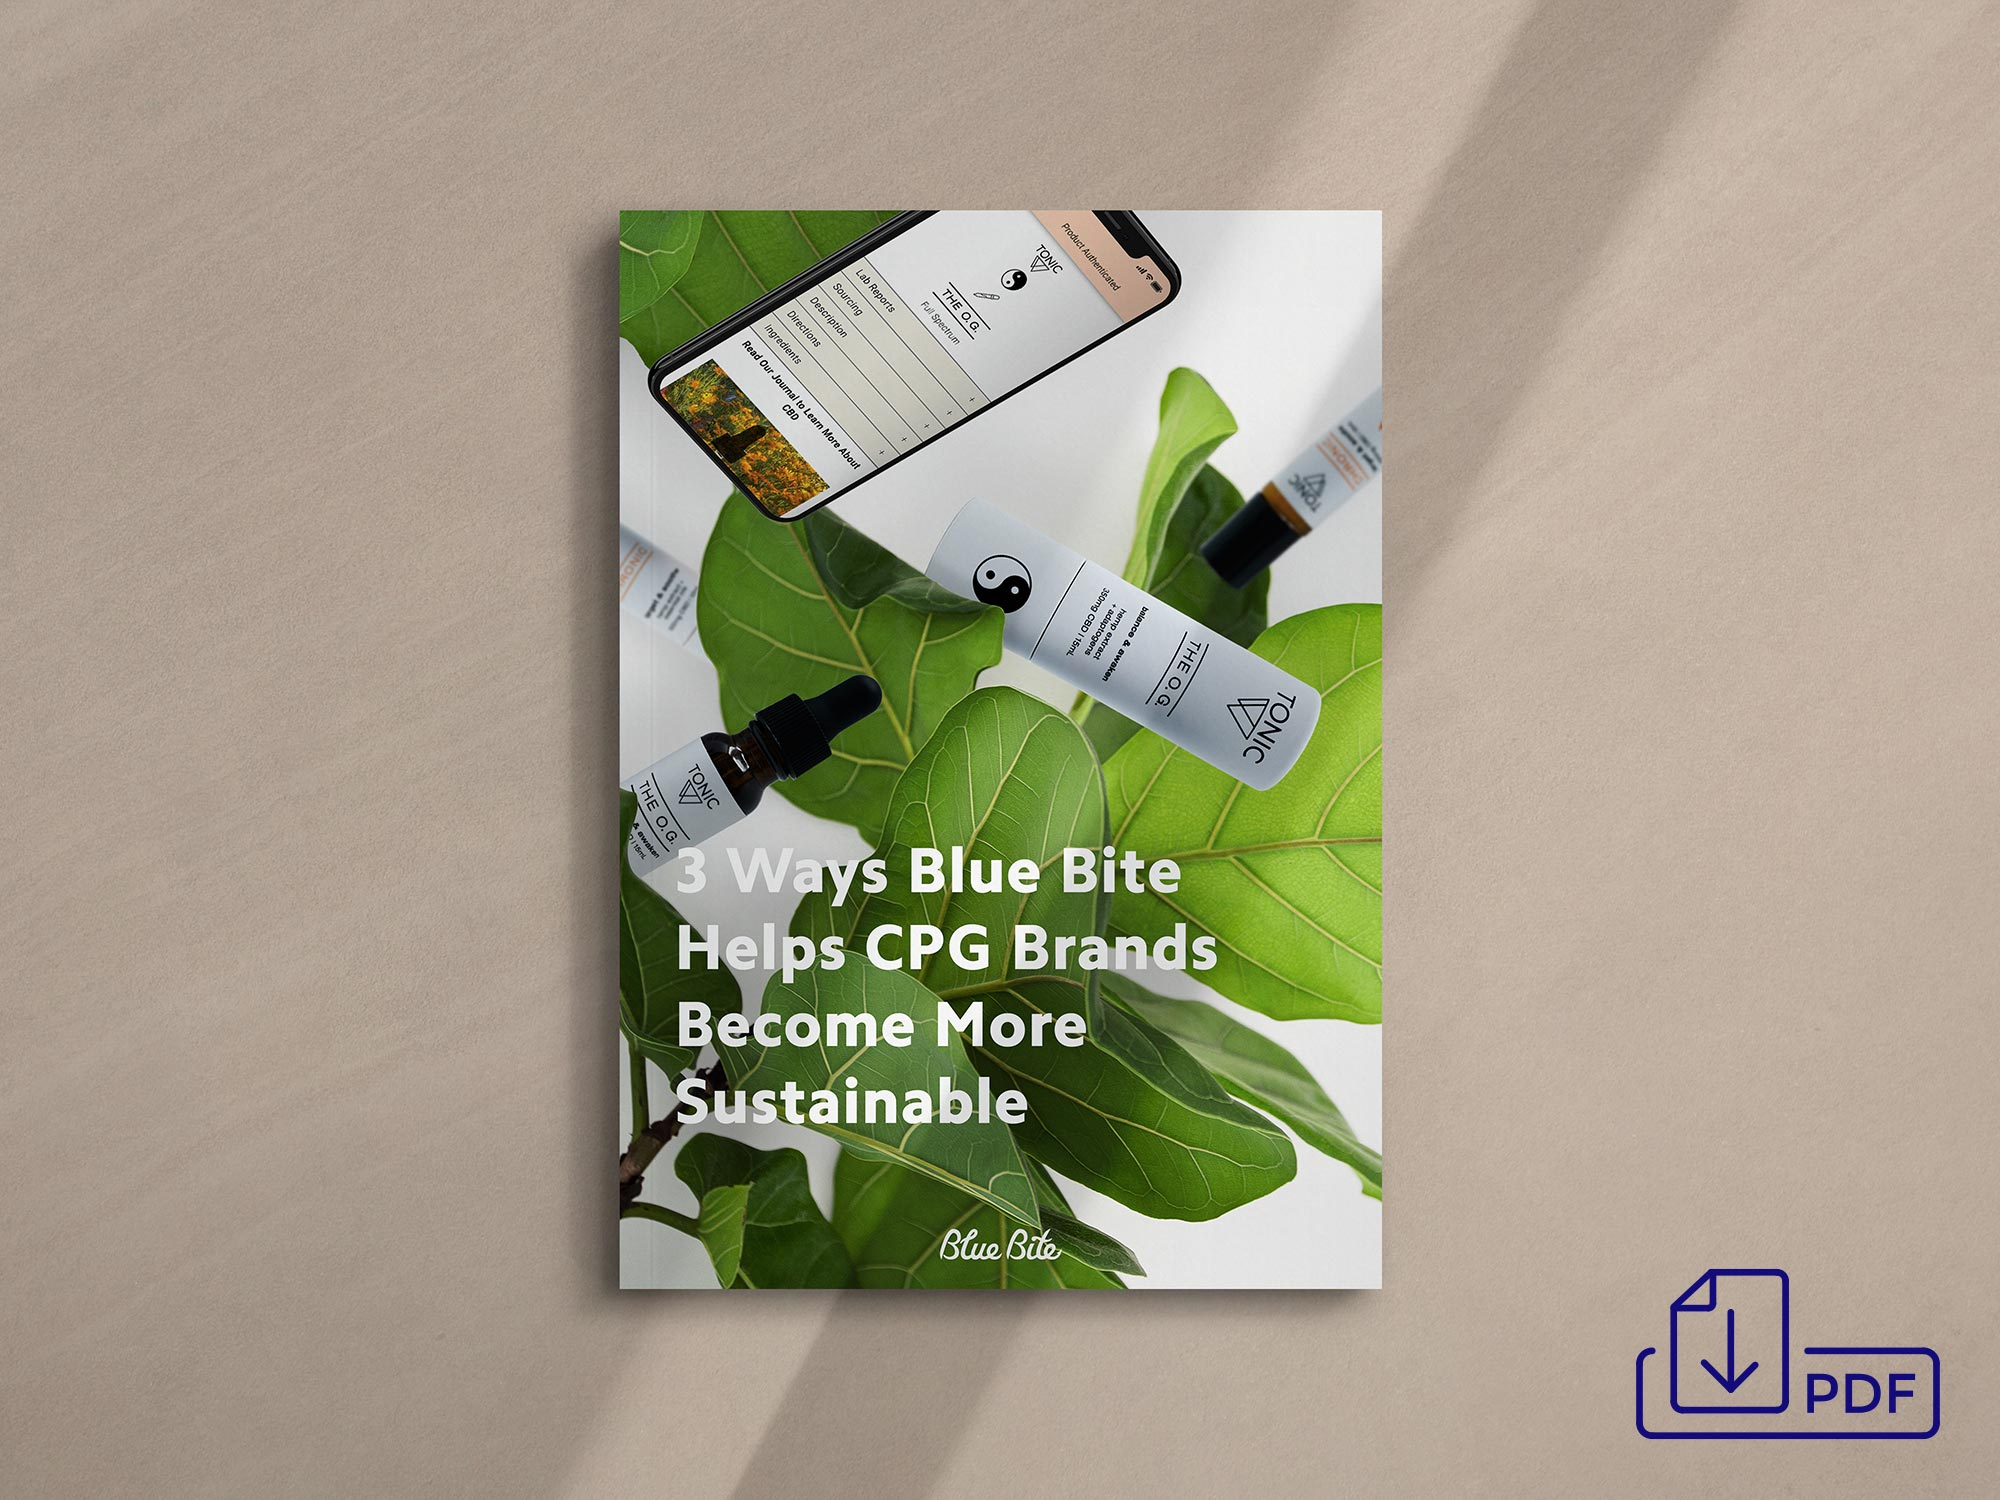 Get the 3 Ways Blue Bite Helps GPG Brands Become More Sustainable PDF